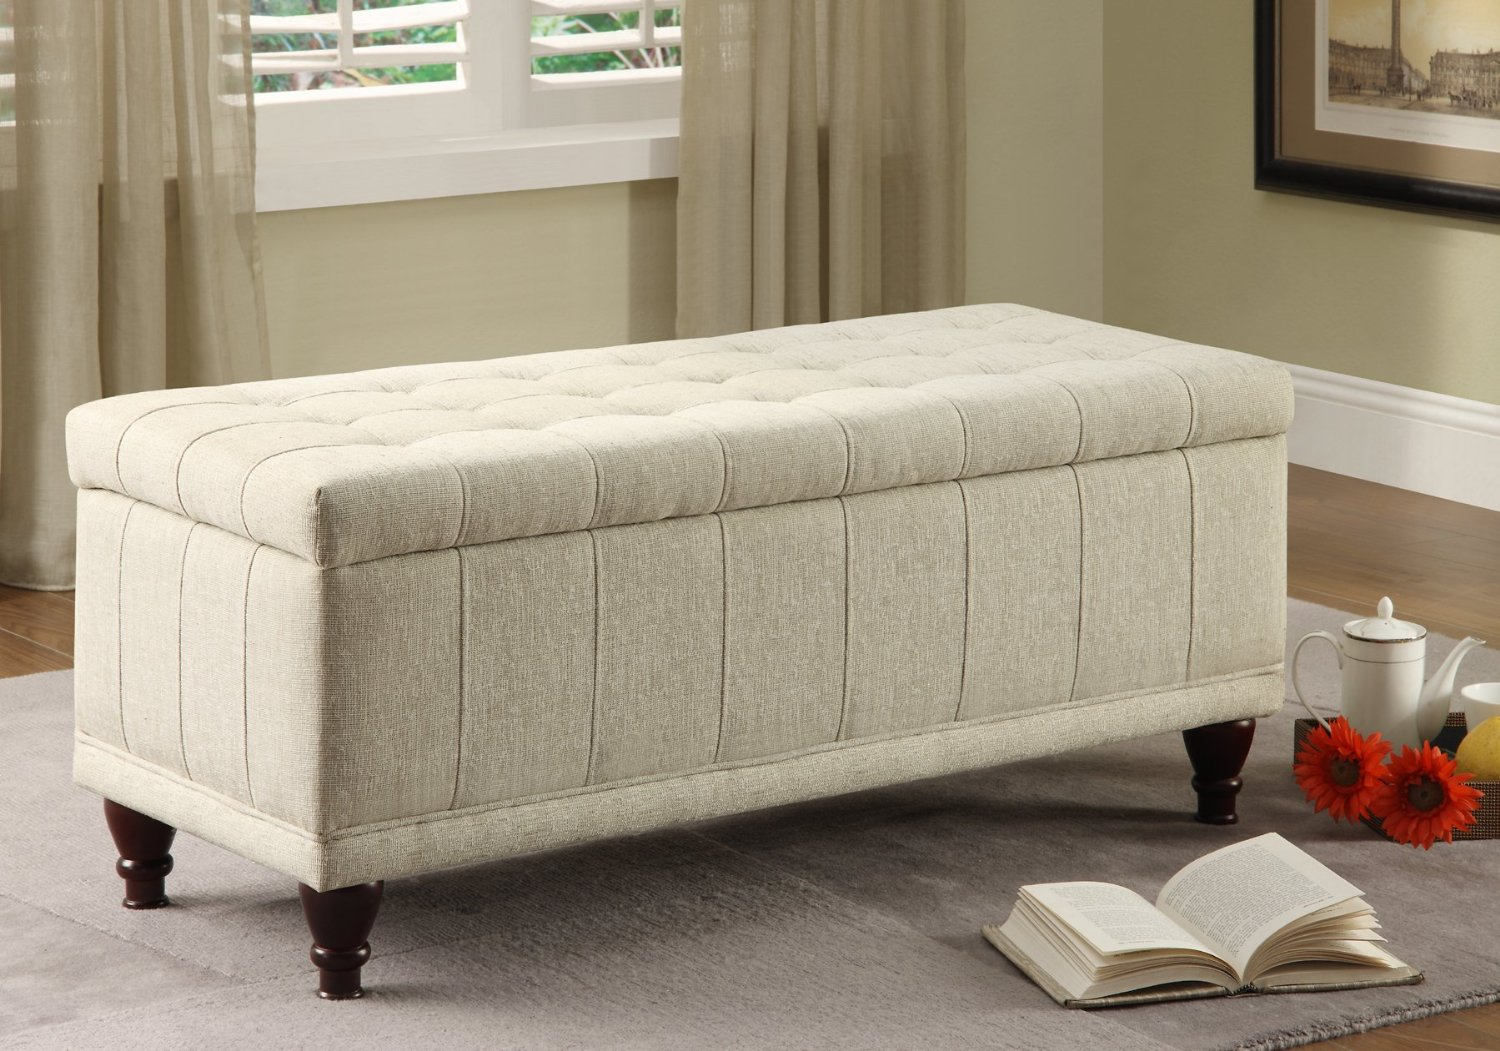 Total fab bedroom storage bench seat Bed bench storage